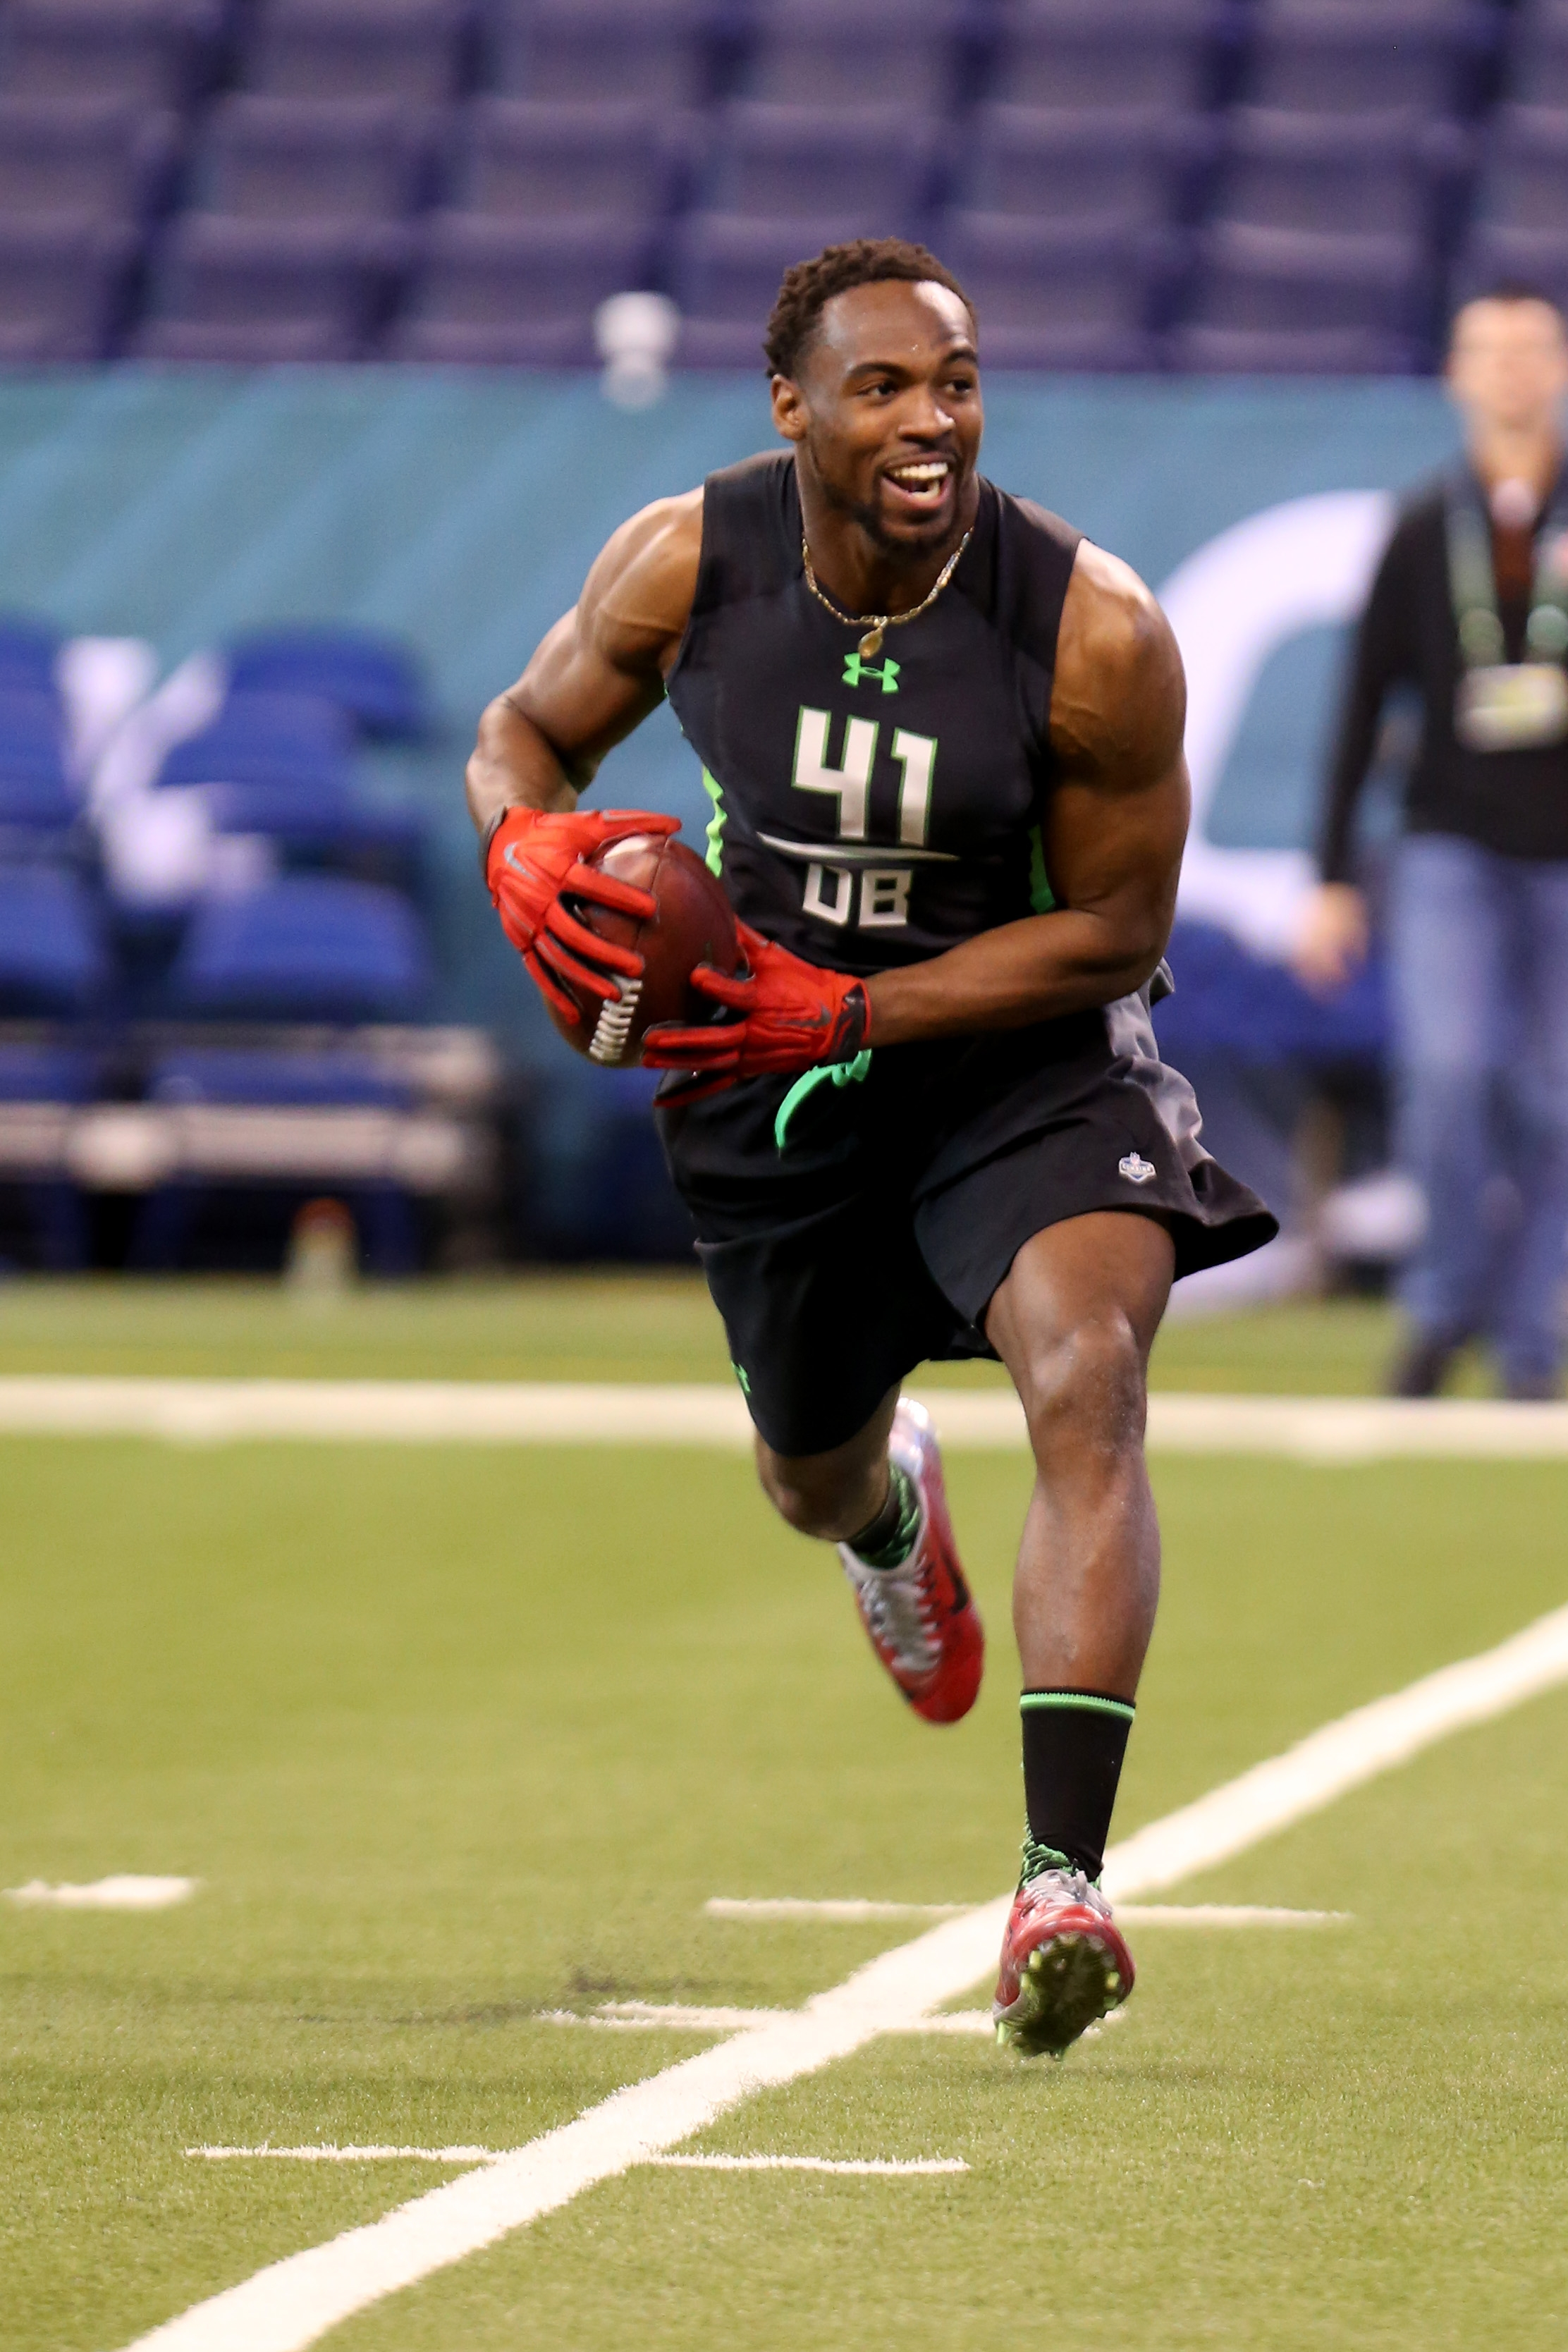 FILE - In this Feb. 29, 2016, file photo, Ohio State defensive back Tyvis Powell performs a drill at the NFL football scouting combine in Indianapolis. Powell often starts a conversation with a laugh. Every interaction is a chance to put a smile on someon